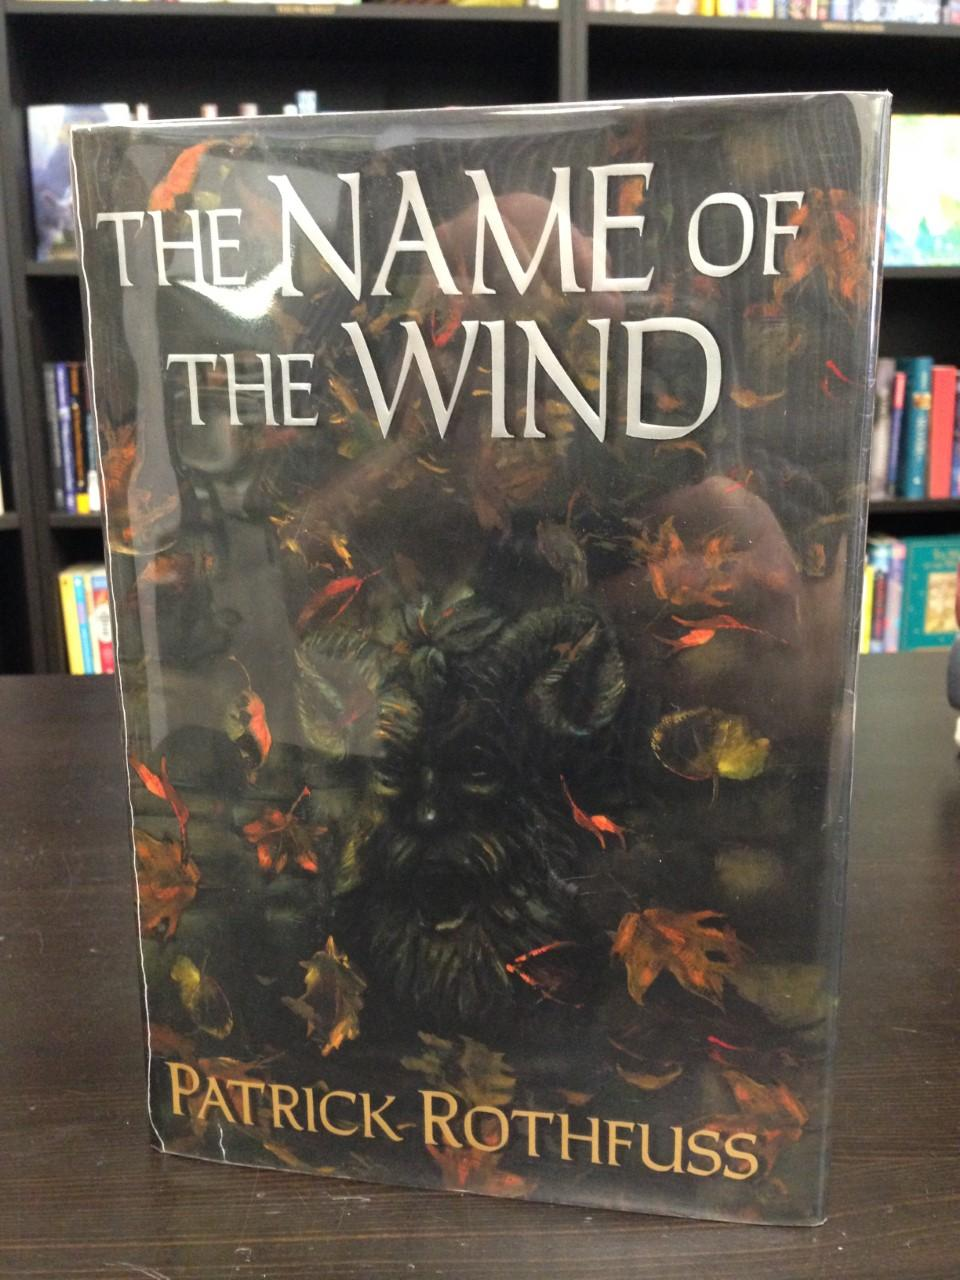 Nuevo Libro De Patrick Rothfuss The Name Of The Wind De Rothfuss Patrick Daw Books